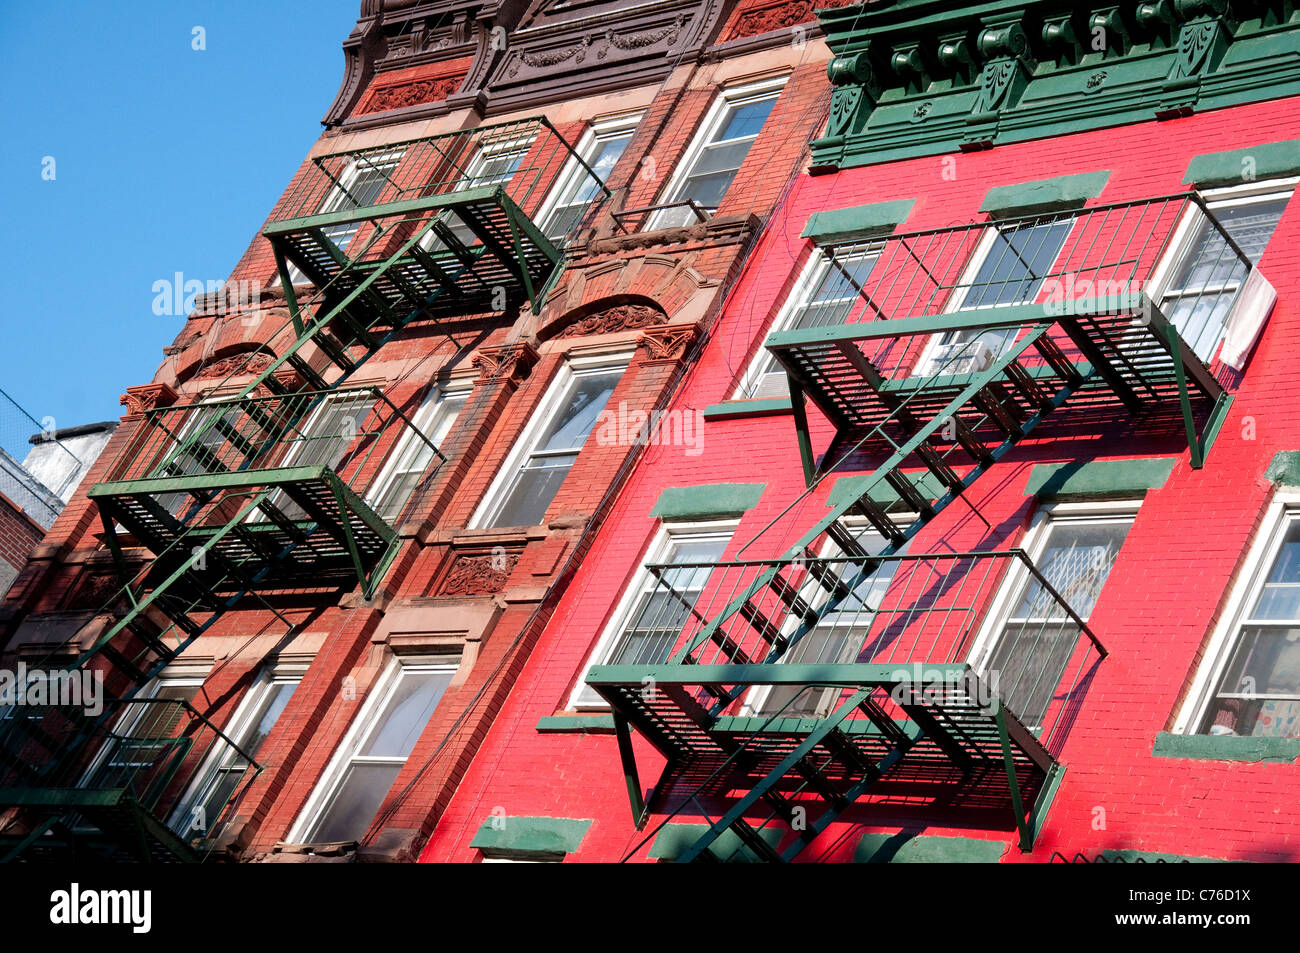 Apartment buildings in Chinatown New York, USA Stock Photo